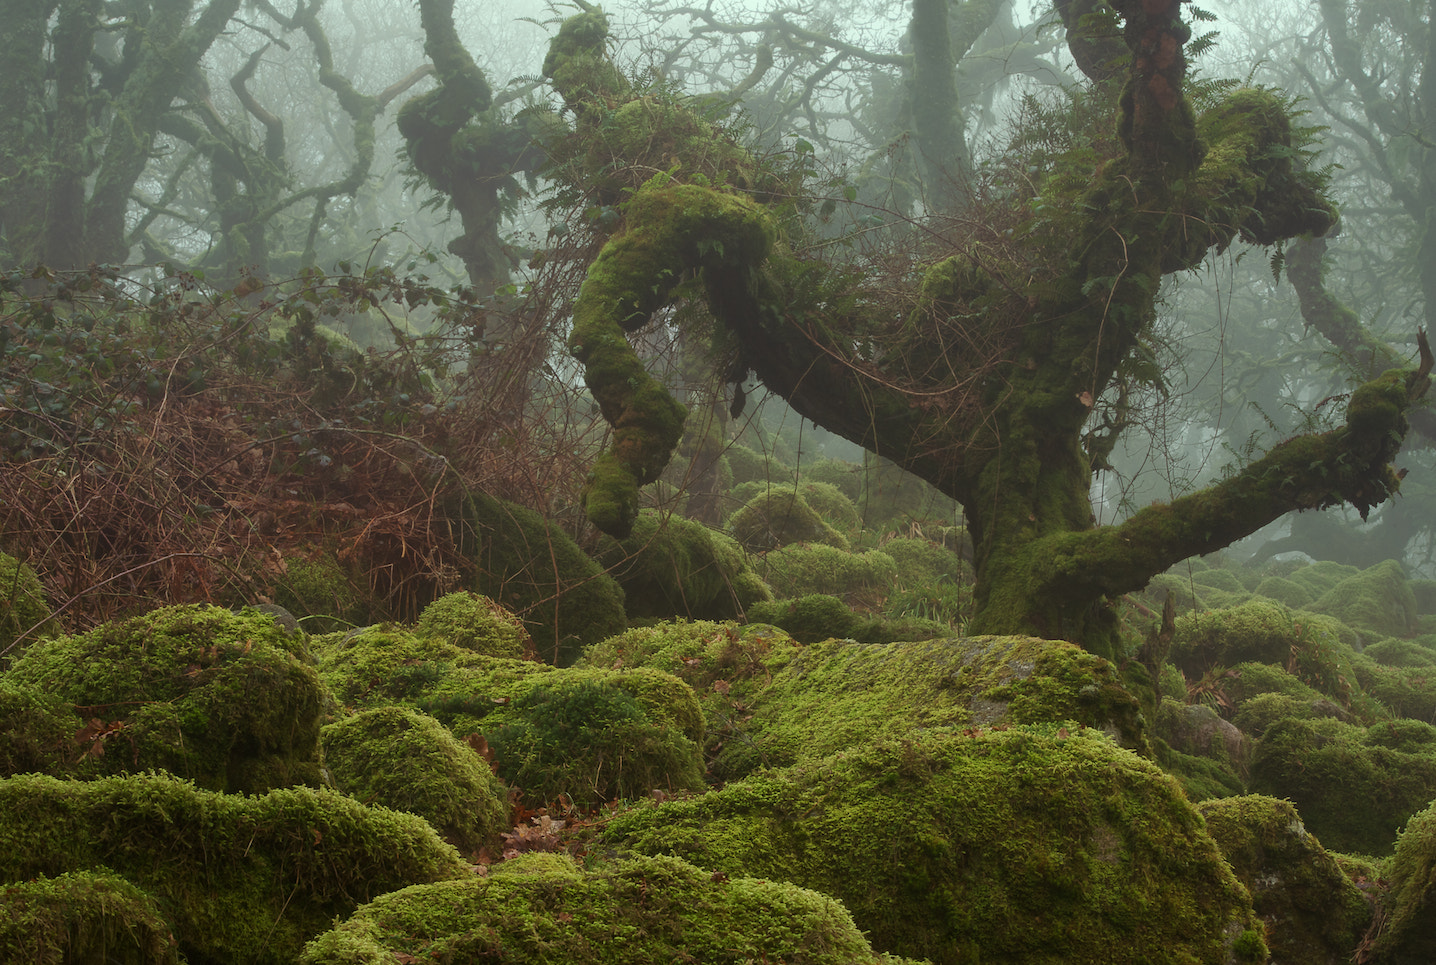 Photograph Tangled by duncan george on 500px